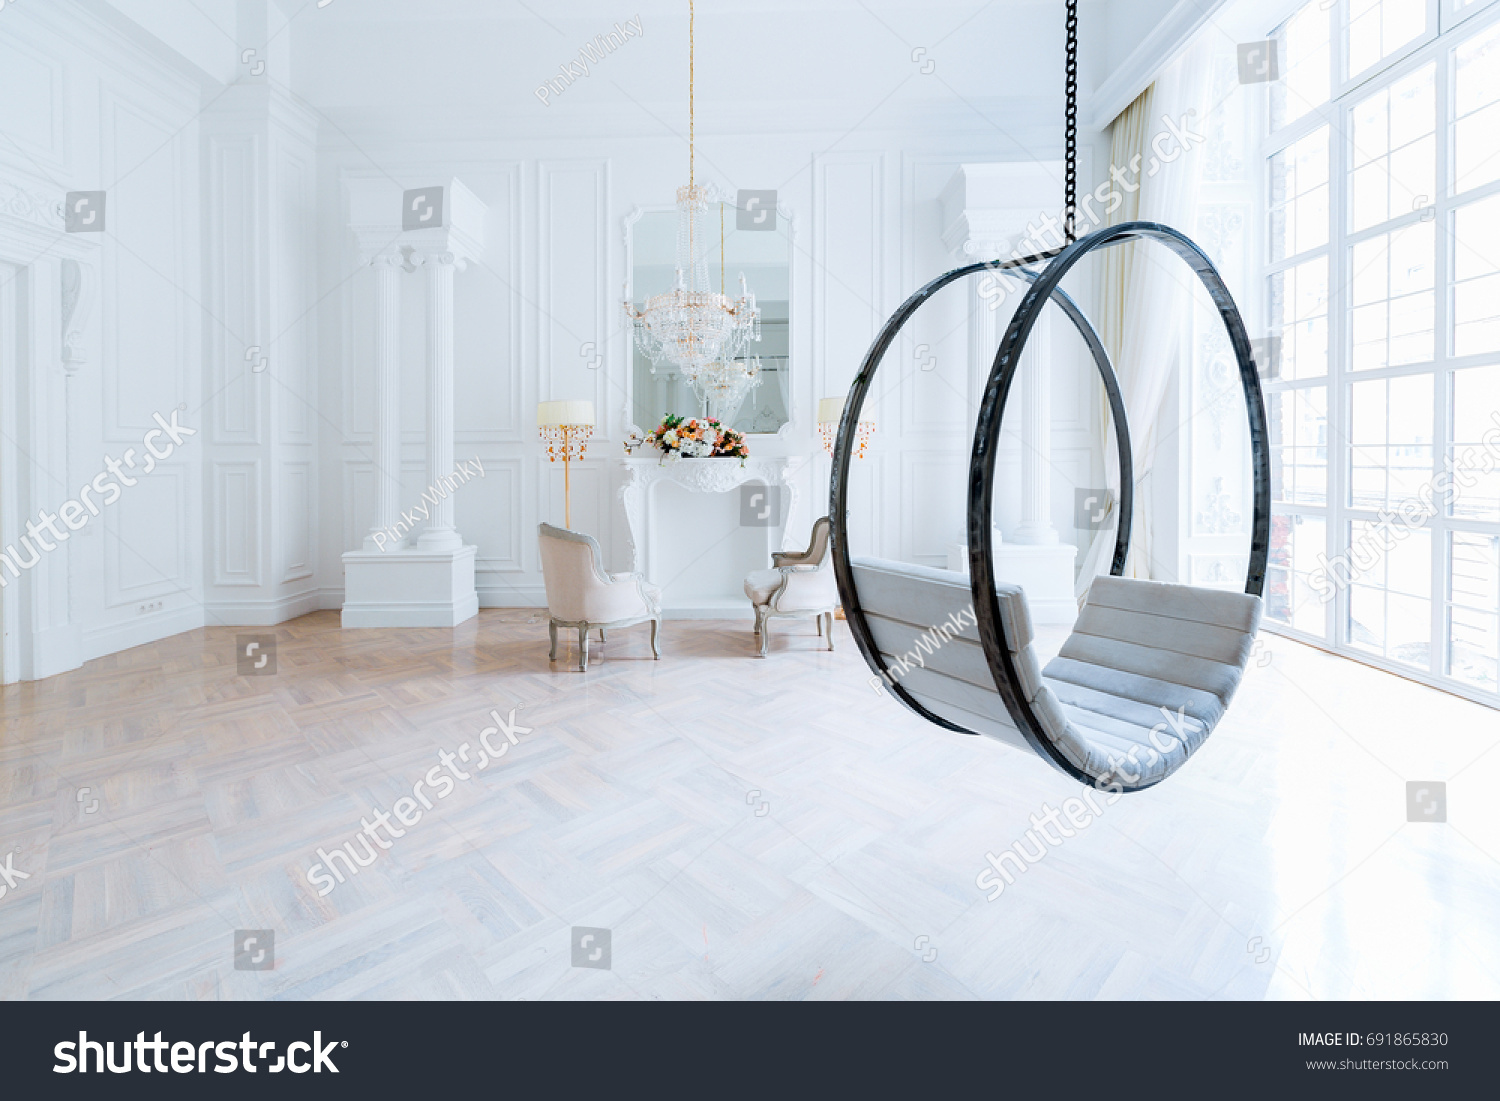 Modern light clean rich baroque style stock photo 691865830 modern light clean rich baroque style interior with swing dailygadgetfo Image collections